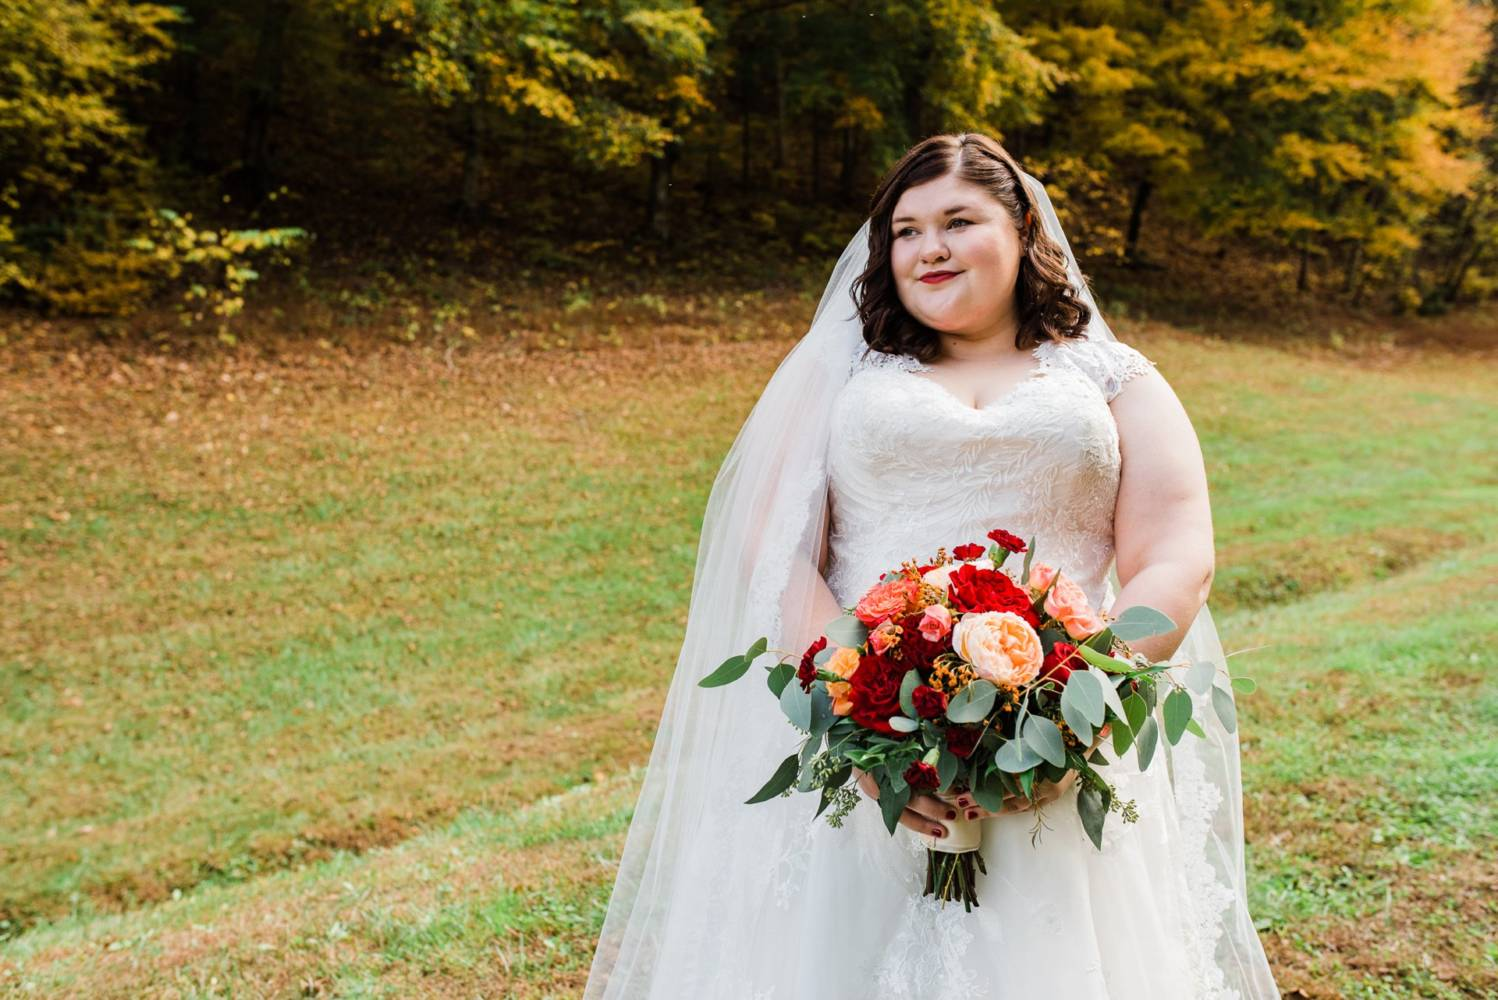 Autumn wedding bride with red and orange bouquet